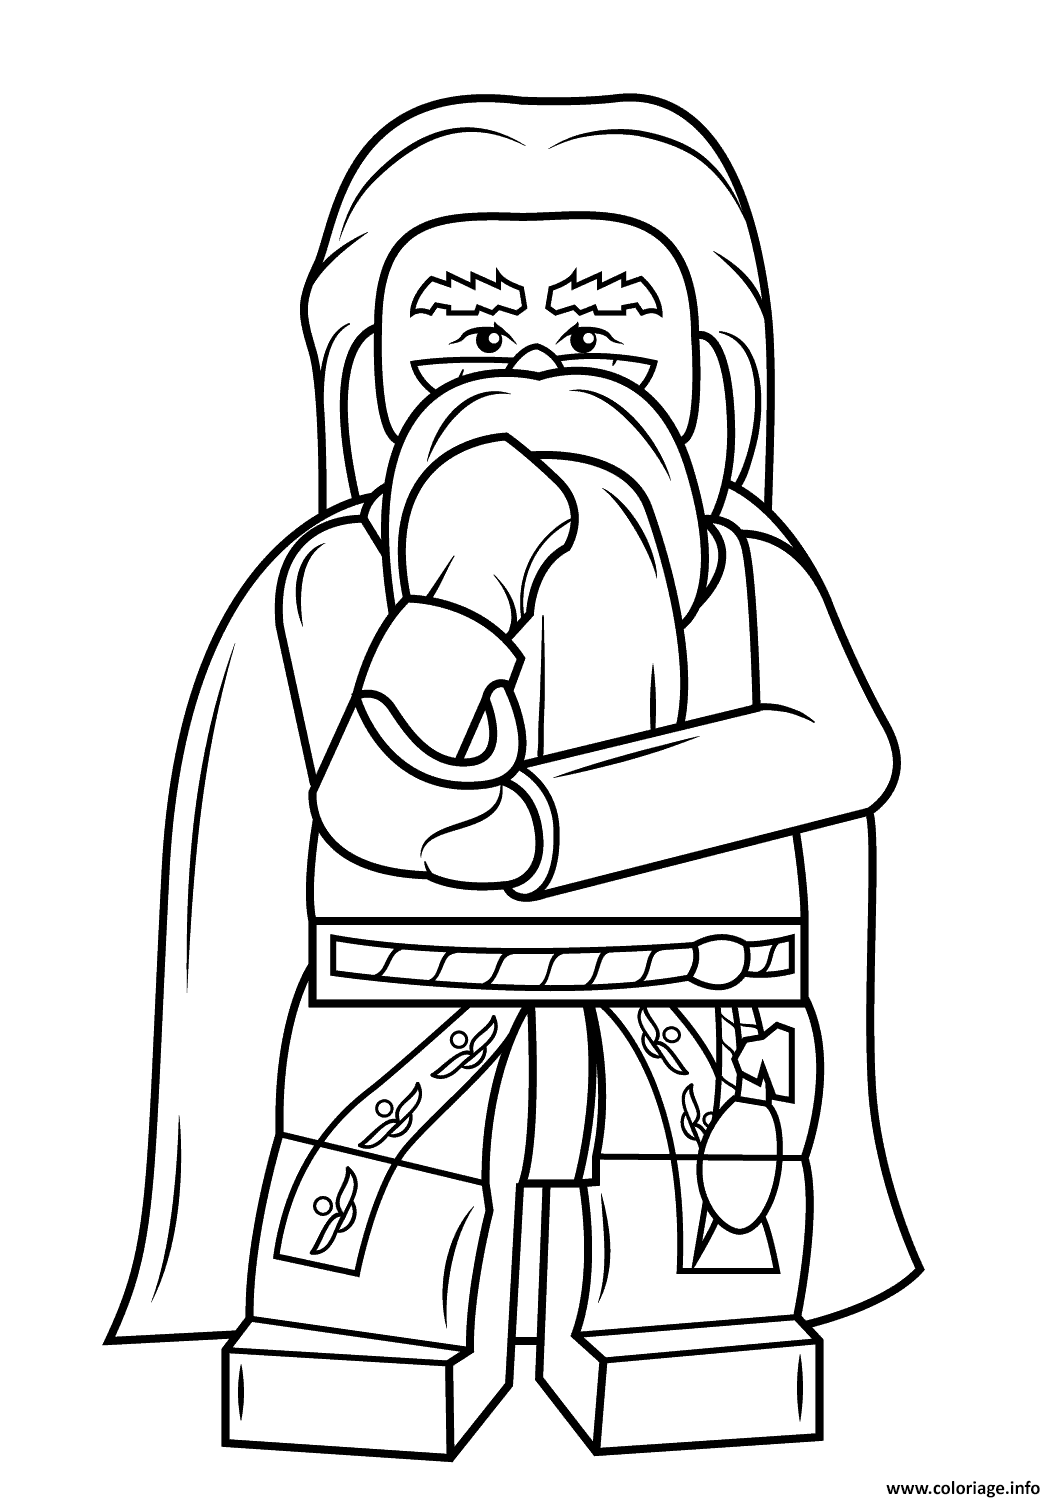 Coloriage lego albus dumbledore harry potter - Dessin lego a colorier ...